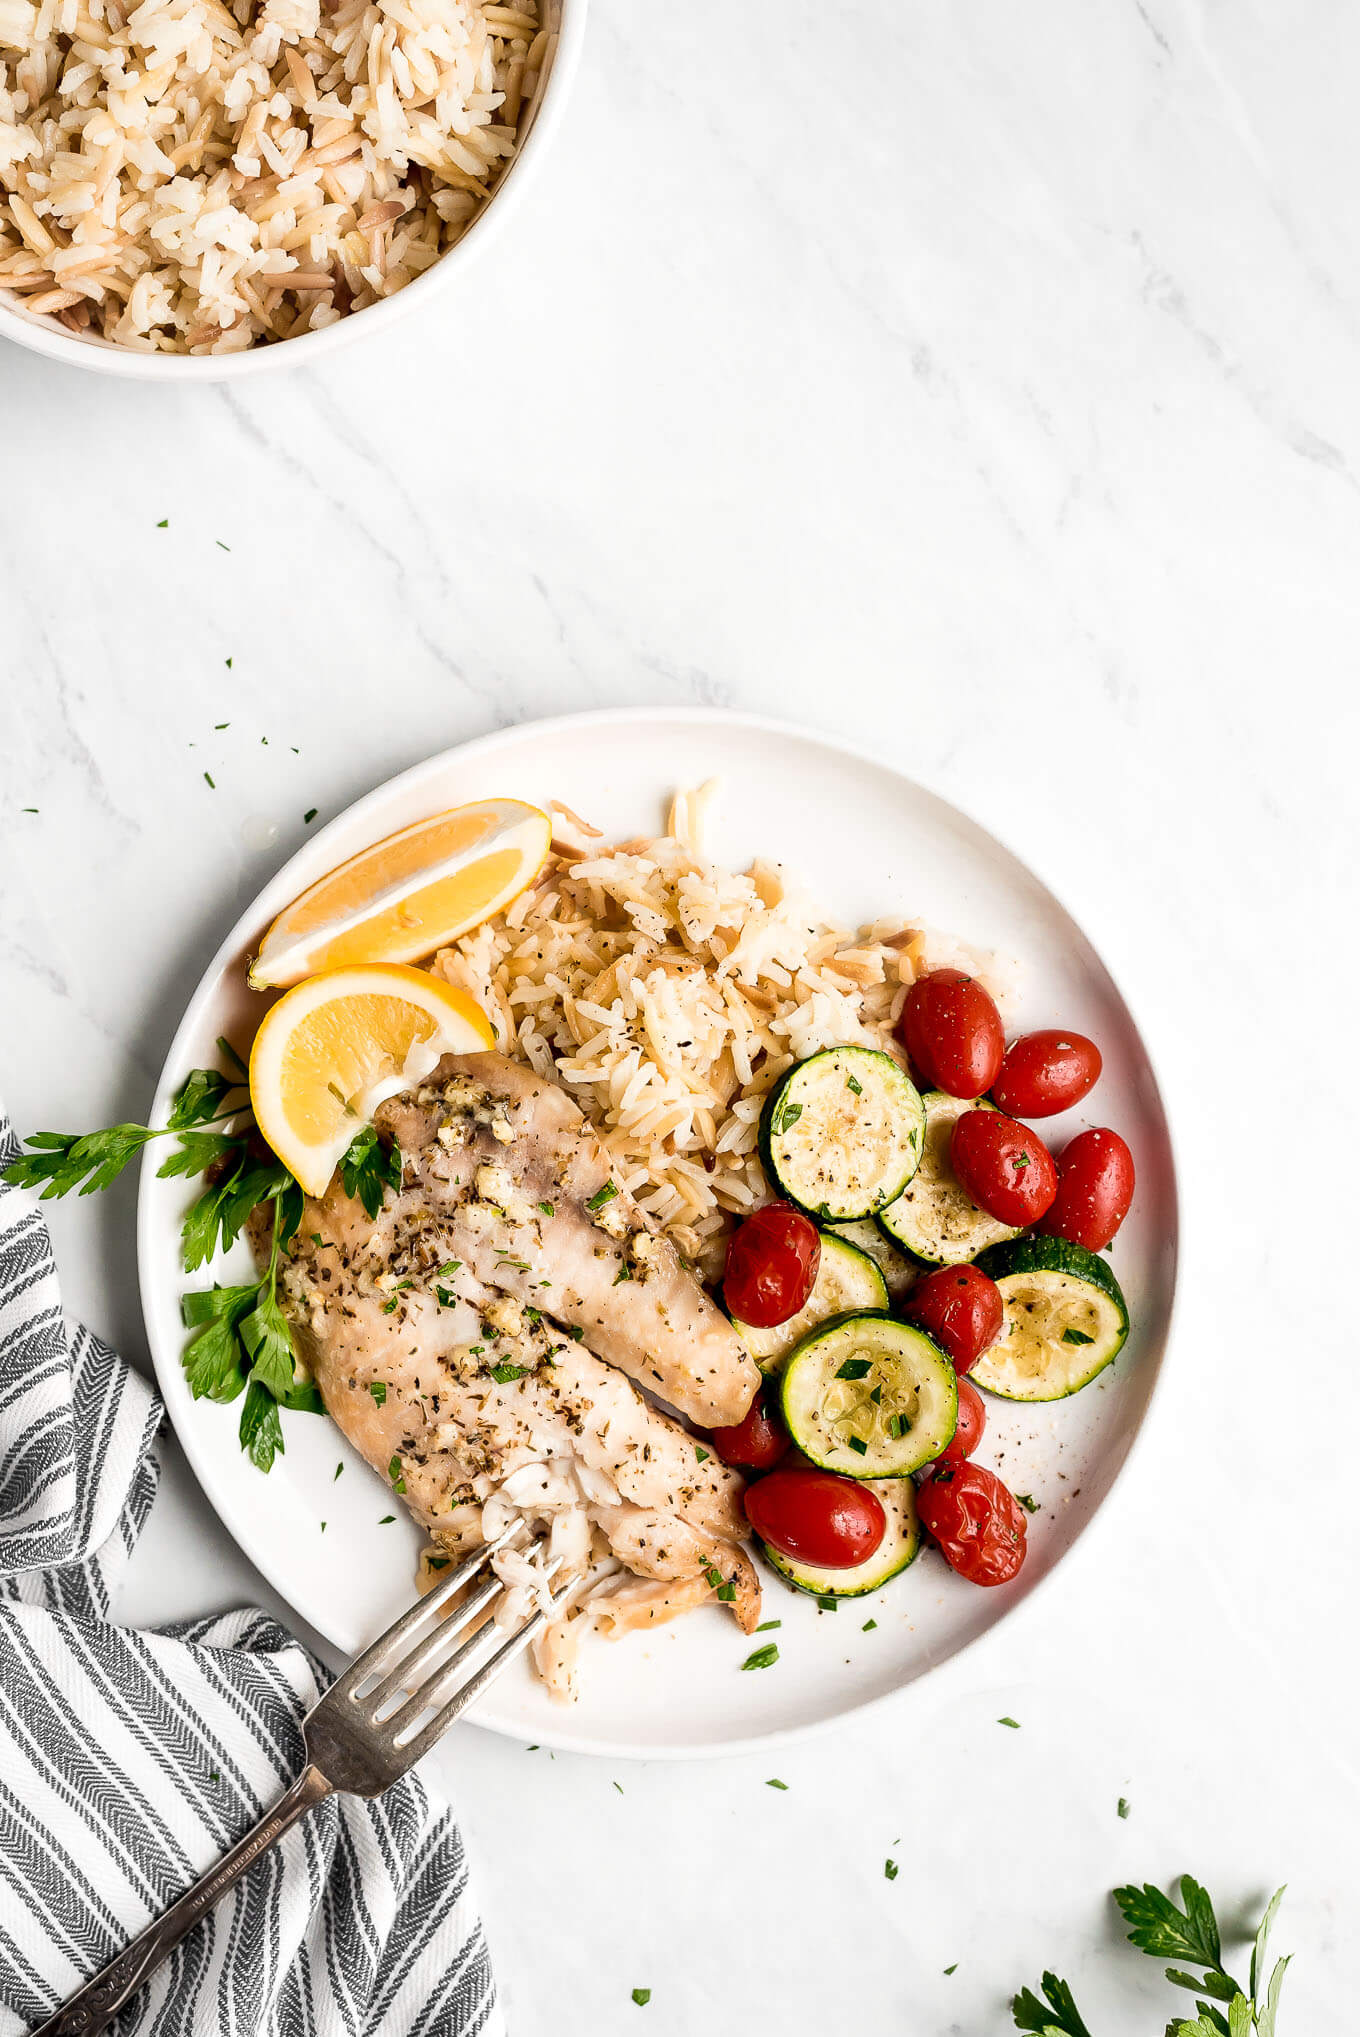 Baked Tilapia plated with zucchini, tomatoes, and orzo.